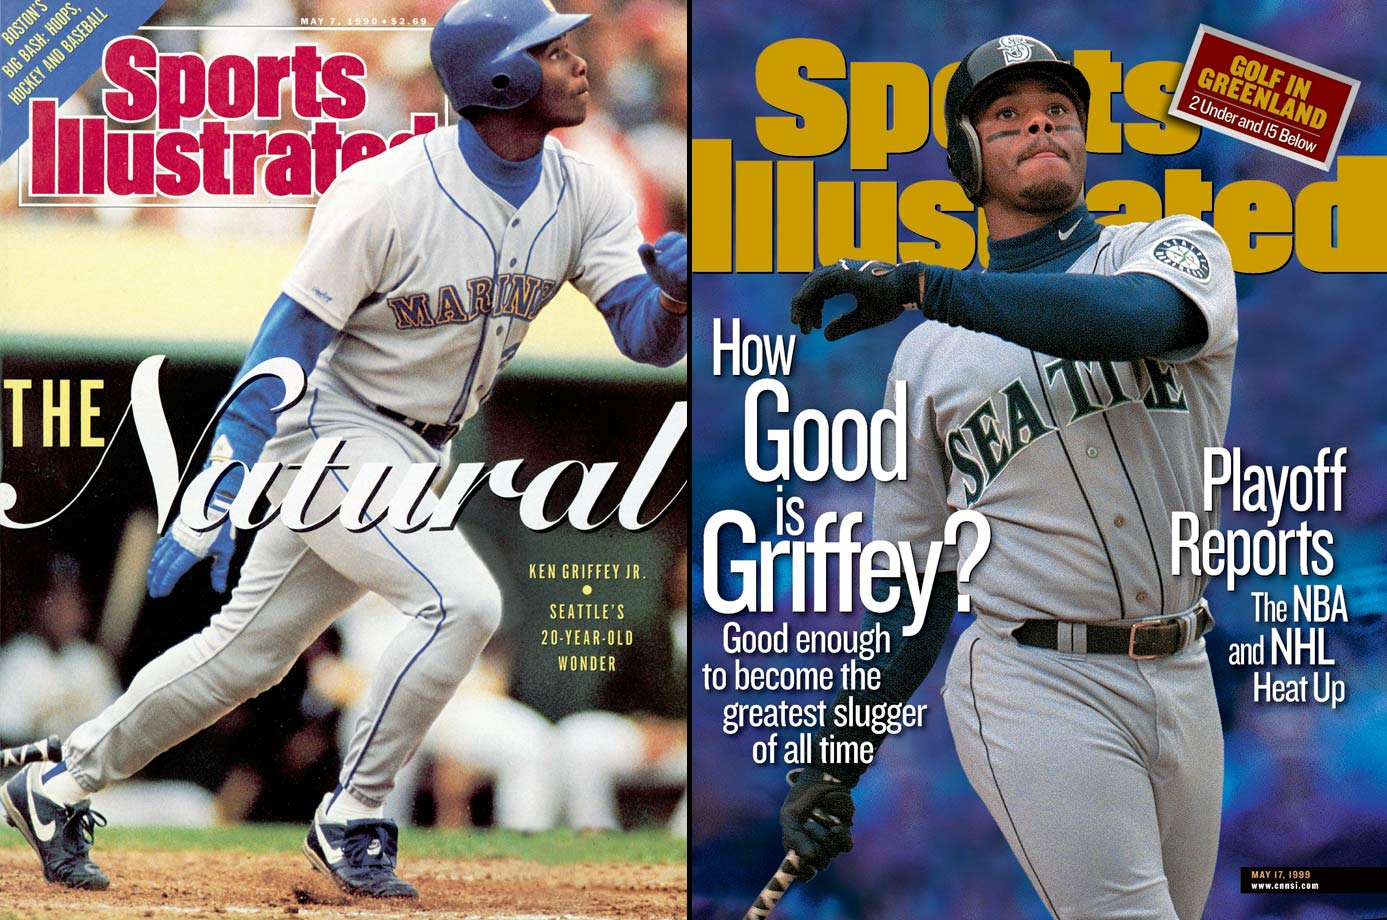 The son of former MLB outfielder Ken Griffey Sr., Junior blossomed into one of the best players of his generation, winning the AL MVP award in 1997, making the All-Star team 13 times, picking up 10 Gold Gloves and hitting 630 career homers. Griffey also led Seattle to its first postseason appearance in 1995. Junior was voted into the Hall of Fame in 2016 on his first ballot.